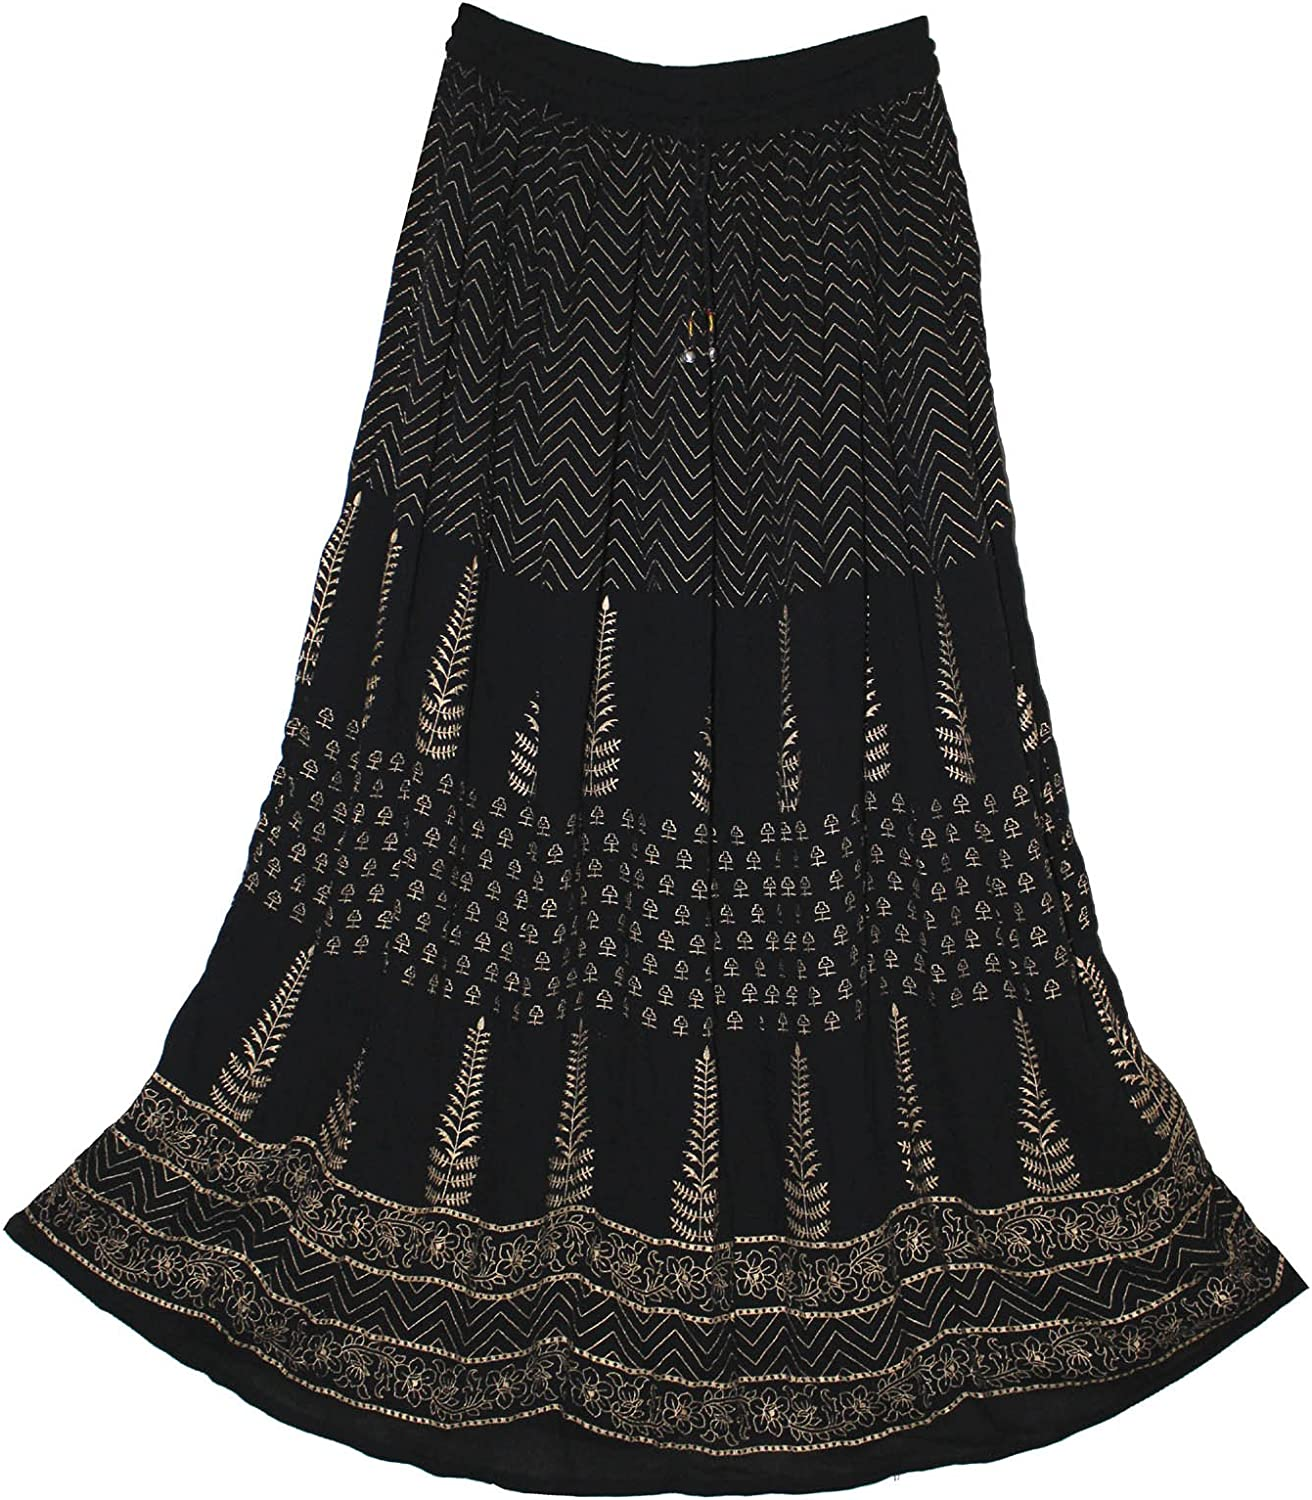 Fashion of India JNB Womens Indian Crinkle Broomstick Gypsy Long Skirt Ethnic Black